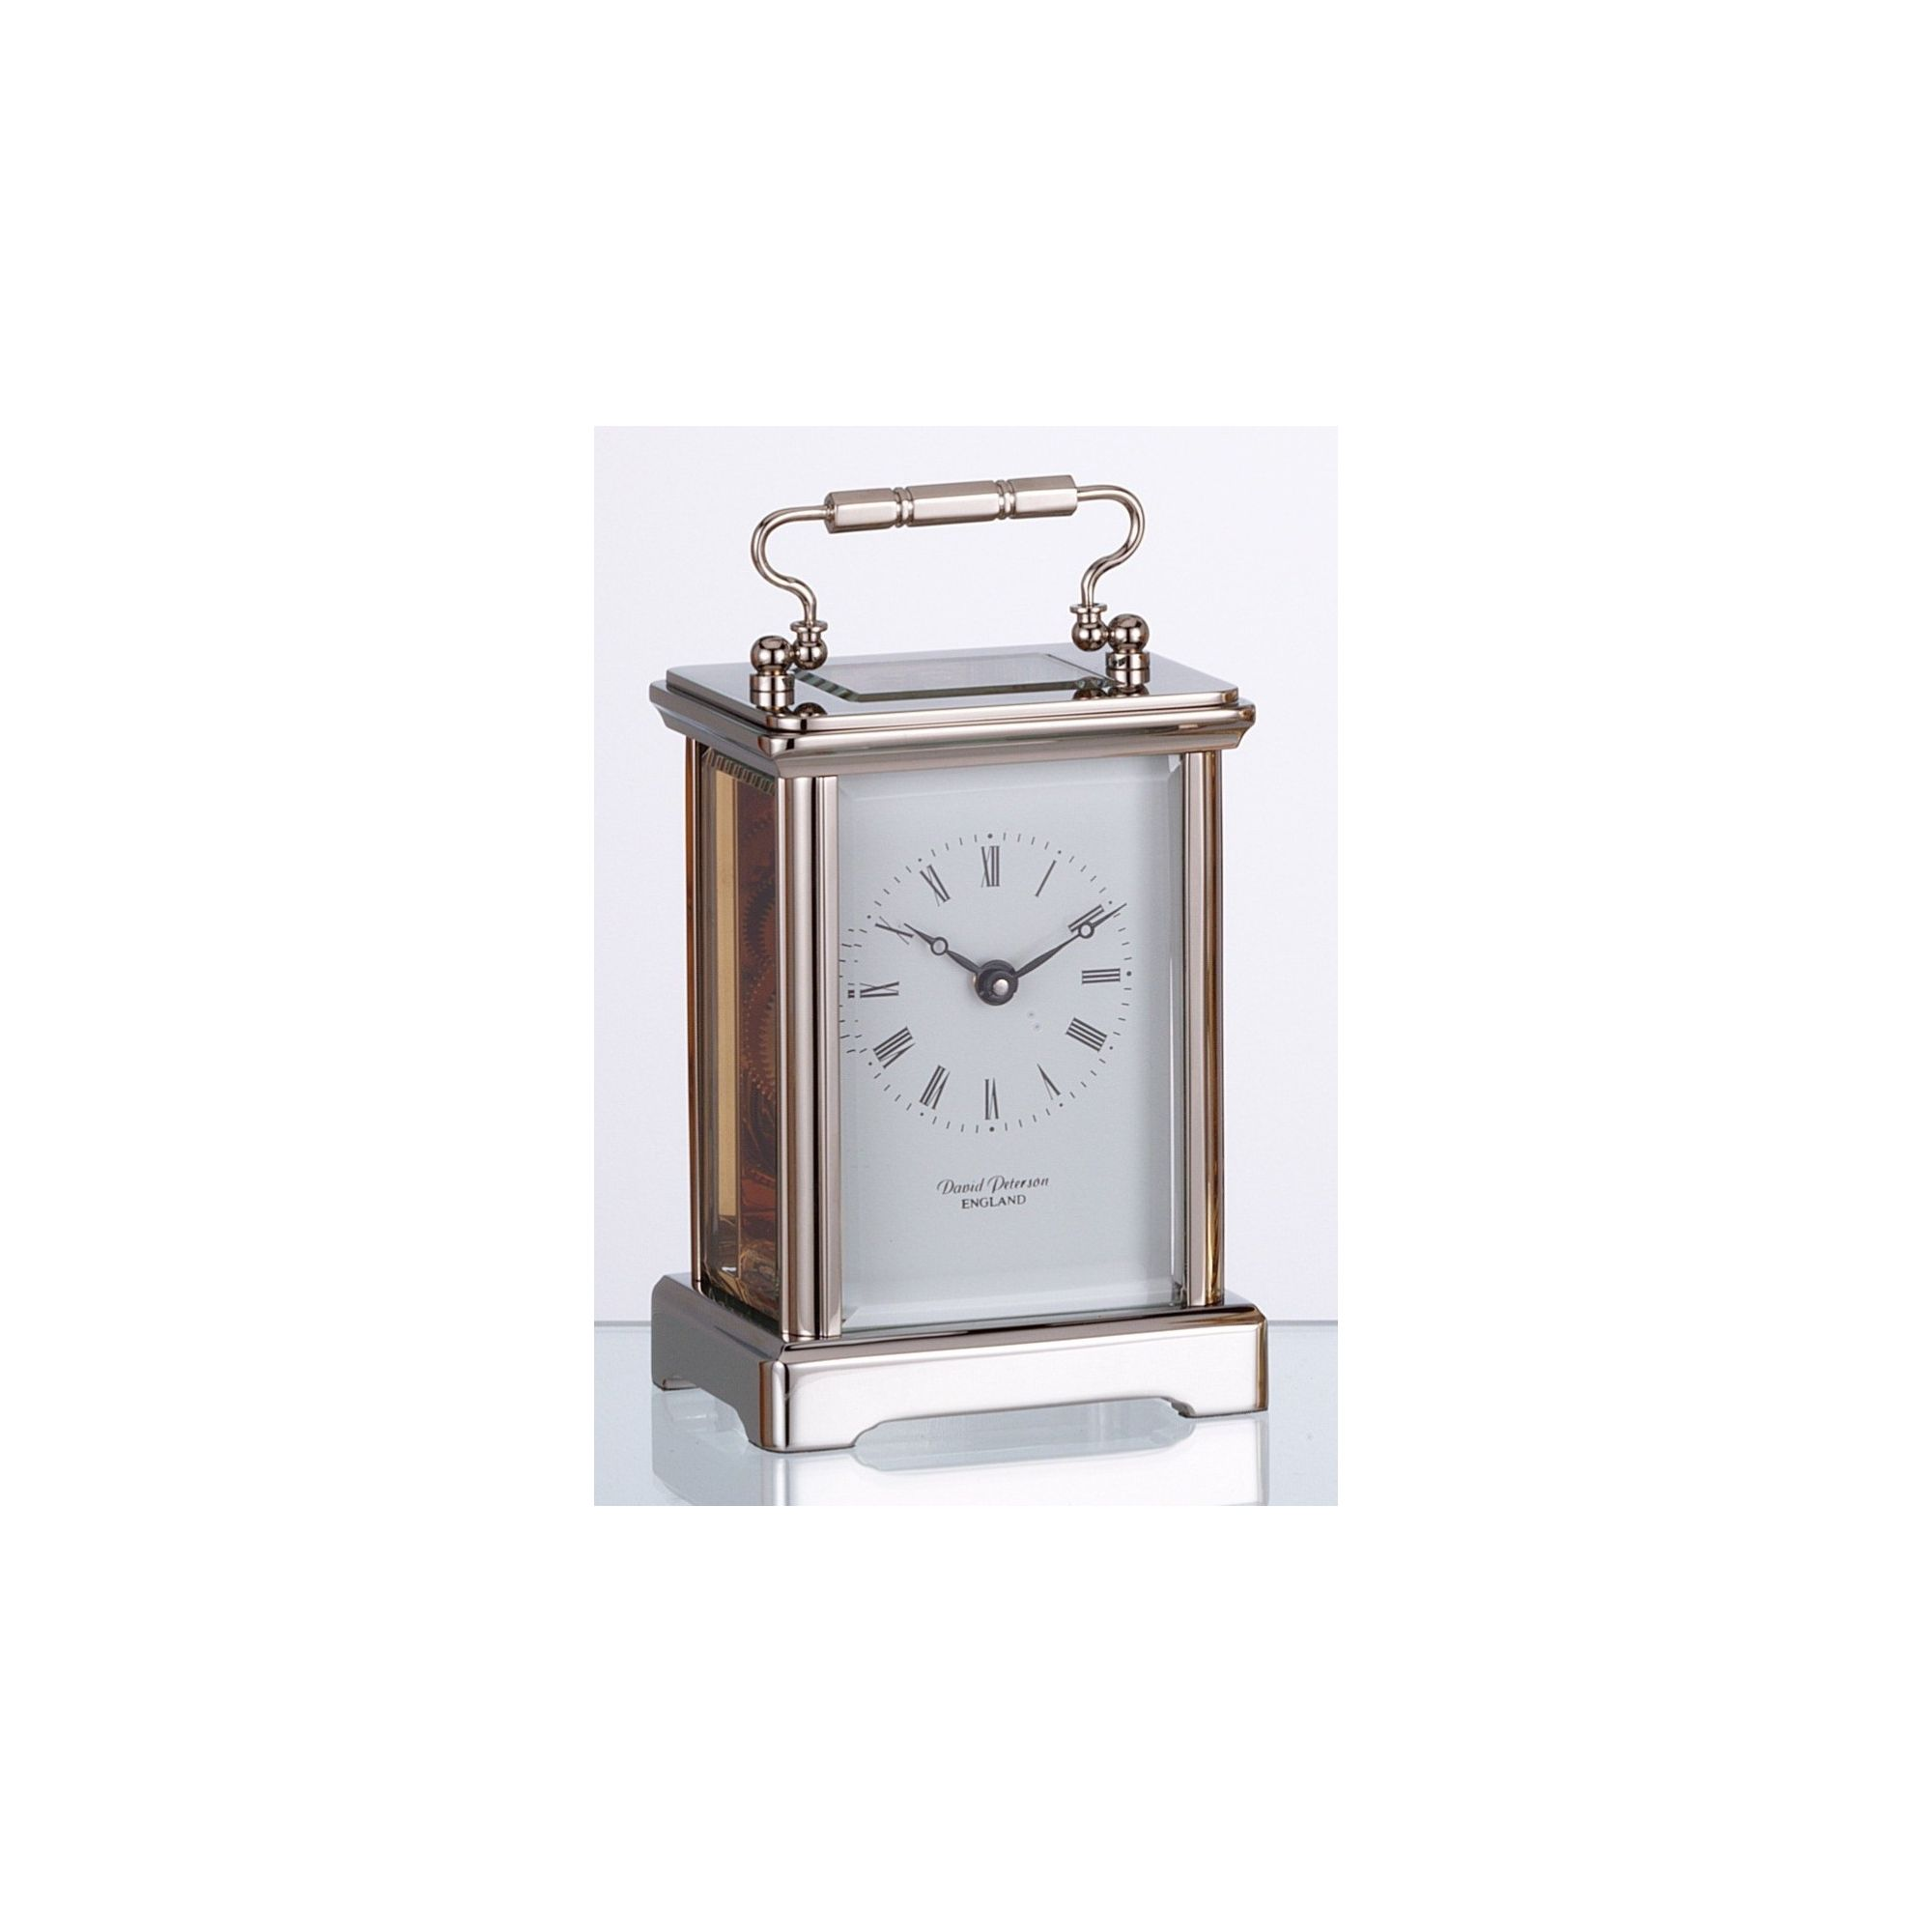 David Peterson Ltd 8 Day Obis Carriage Clock in Chrome at Tescos Direct